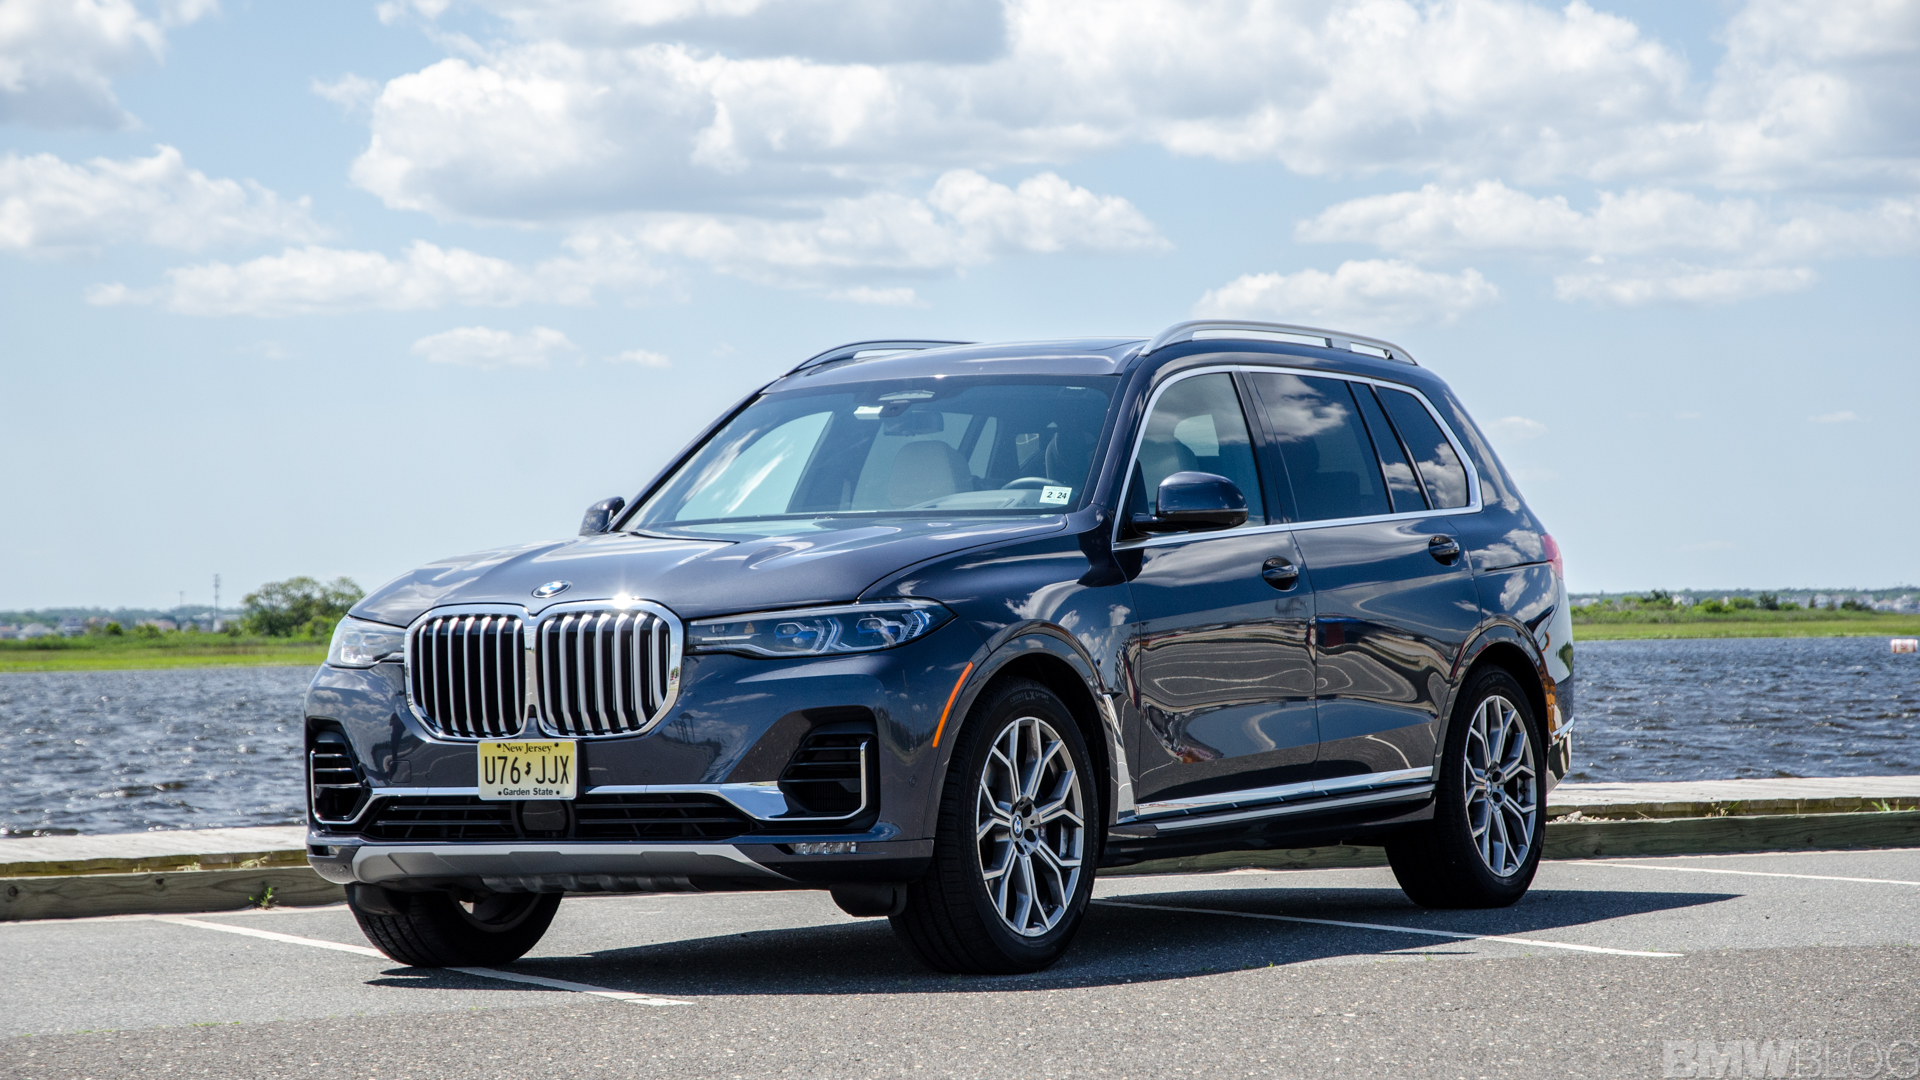 BMW X7 xDrive50i 5 of 71